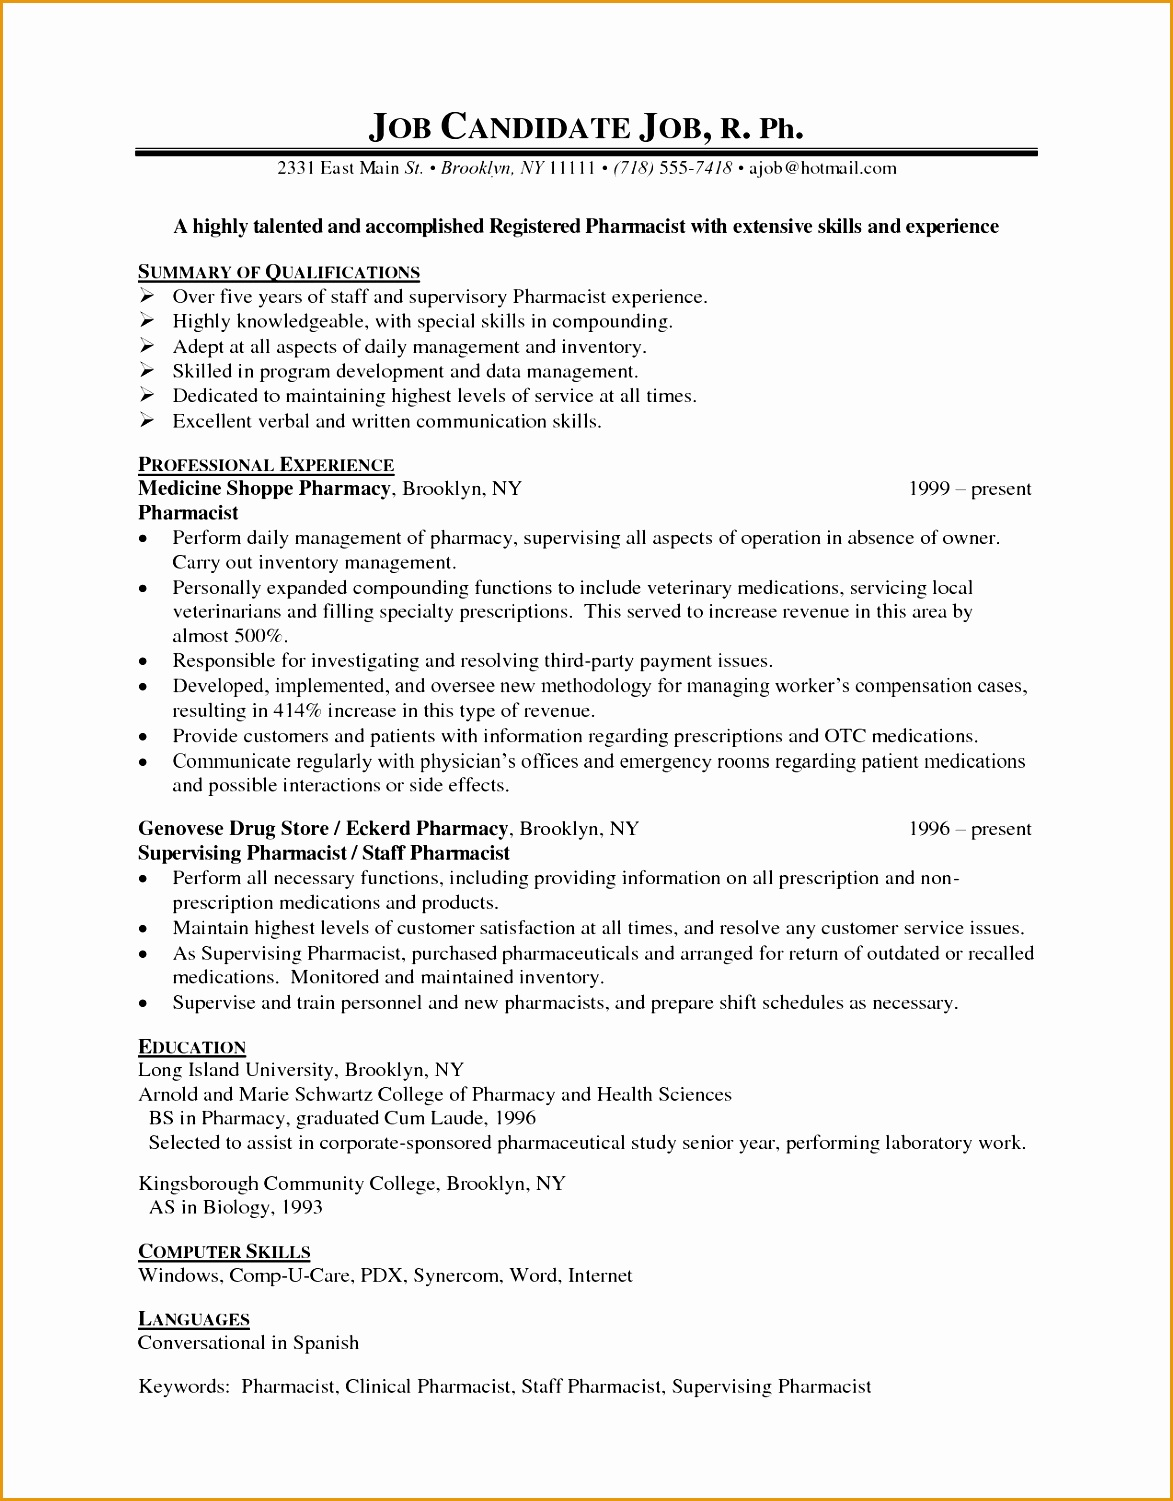 Pharmacist Resume Examples we provide as reference to make correct and good quality Resume15011173